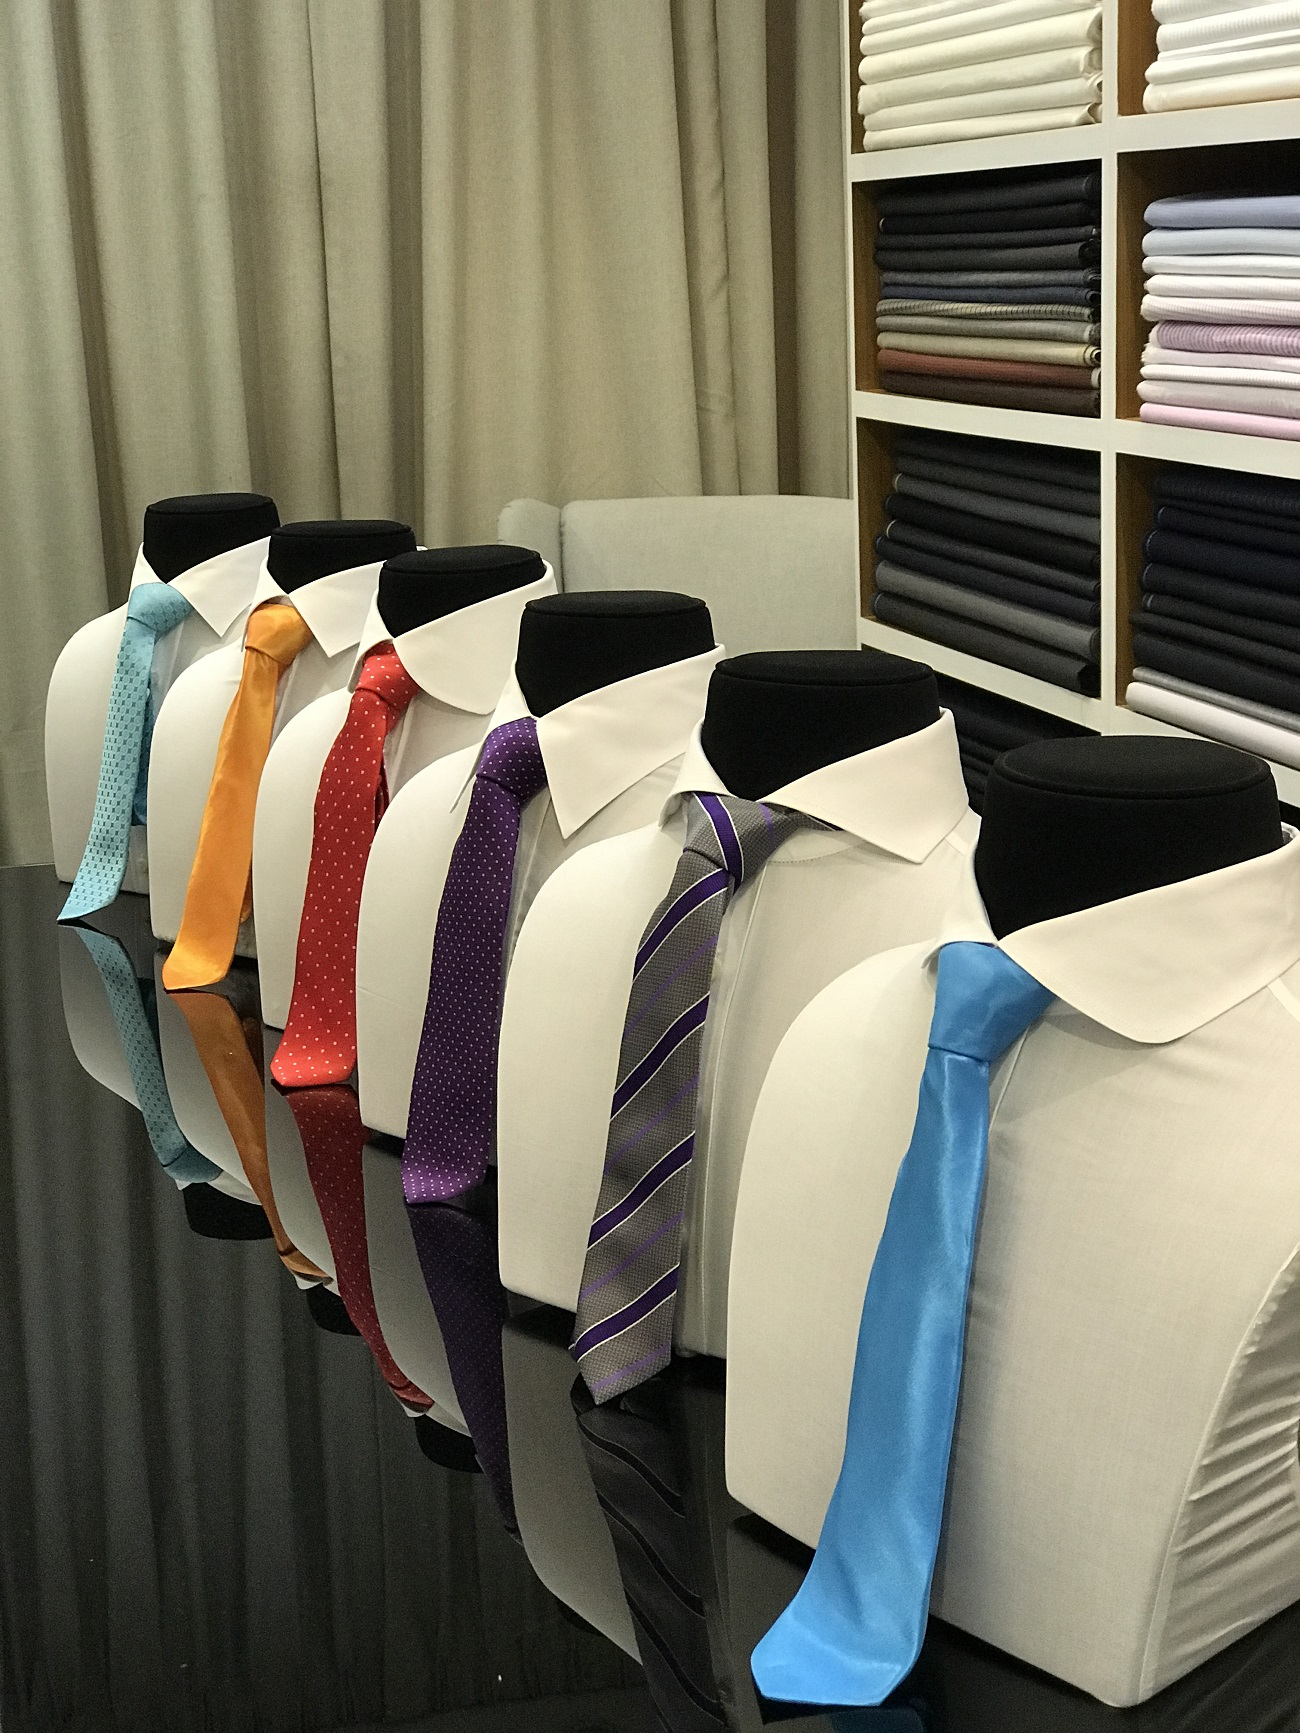 Pro Tips to Determine the Premium Quality of Your Shirt